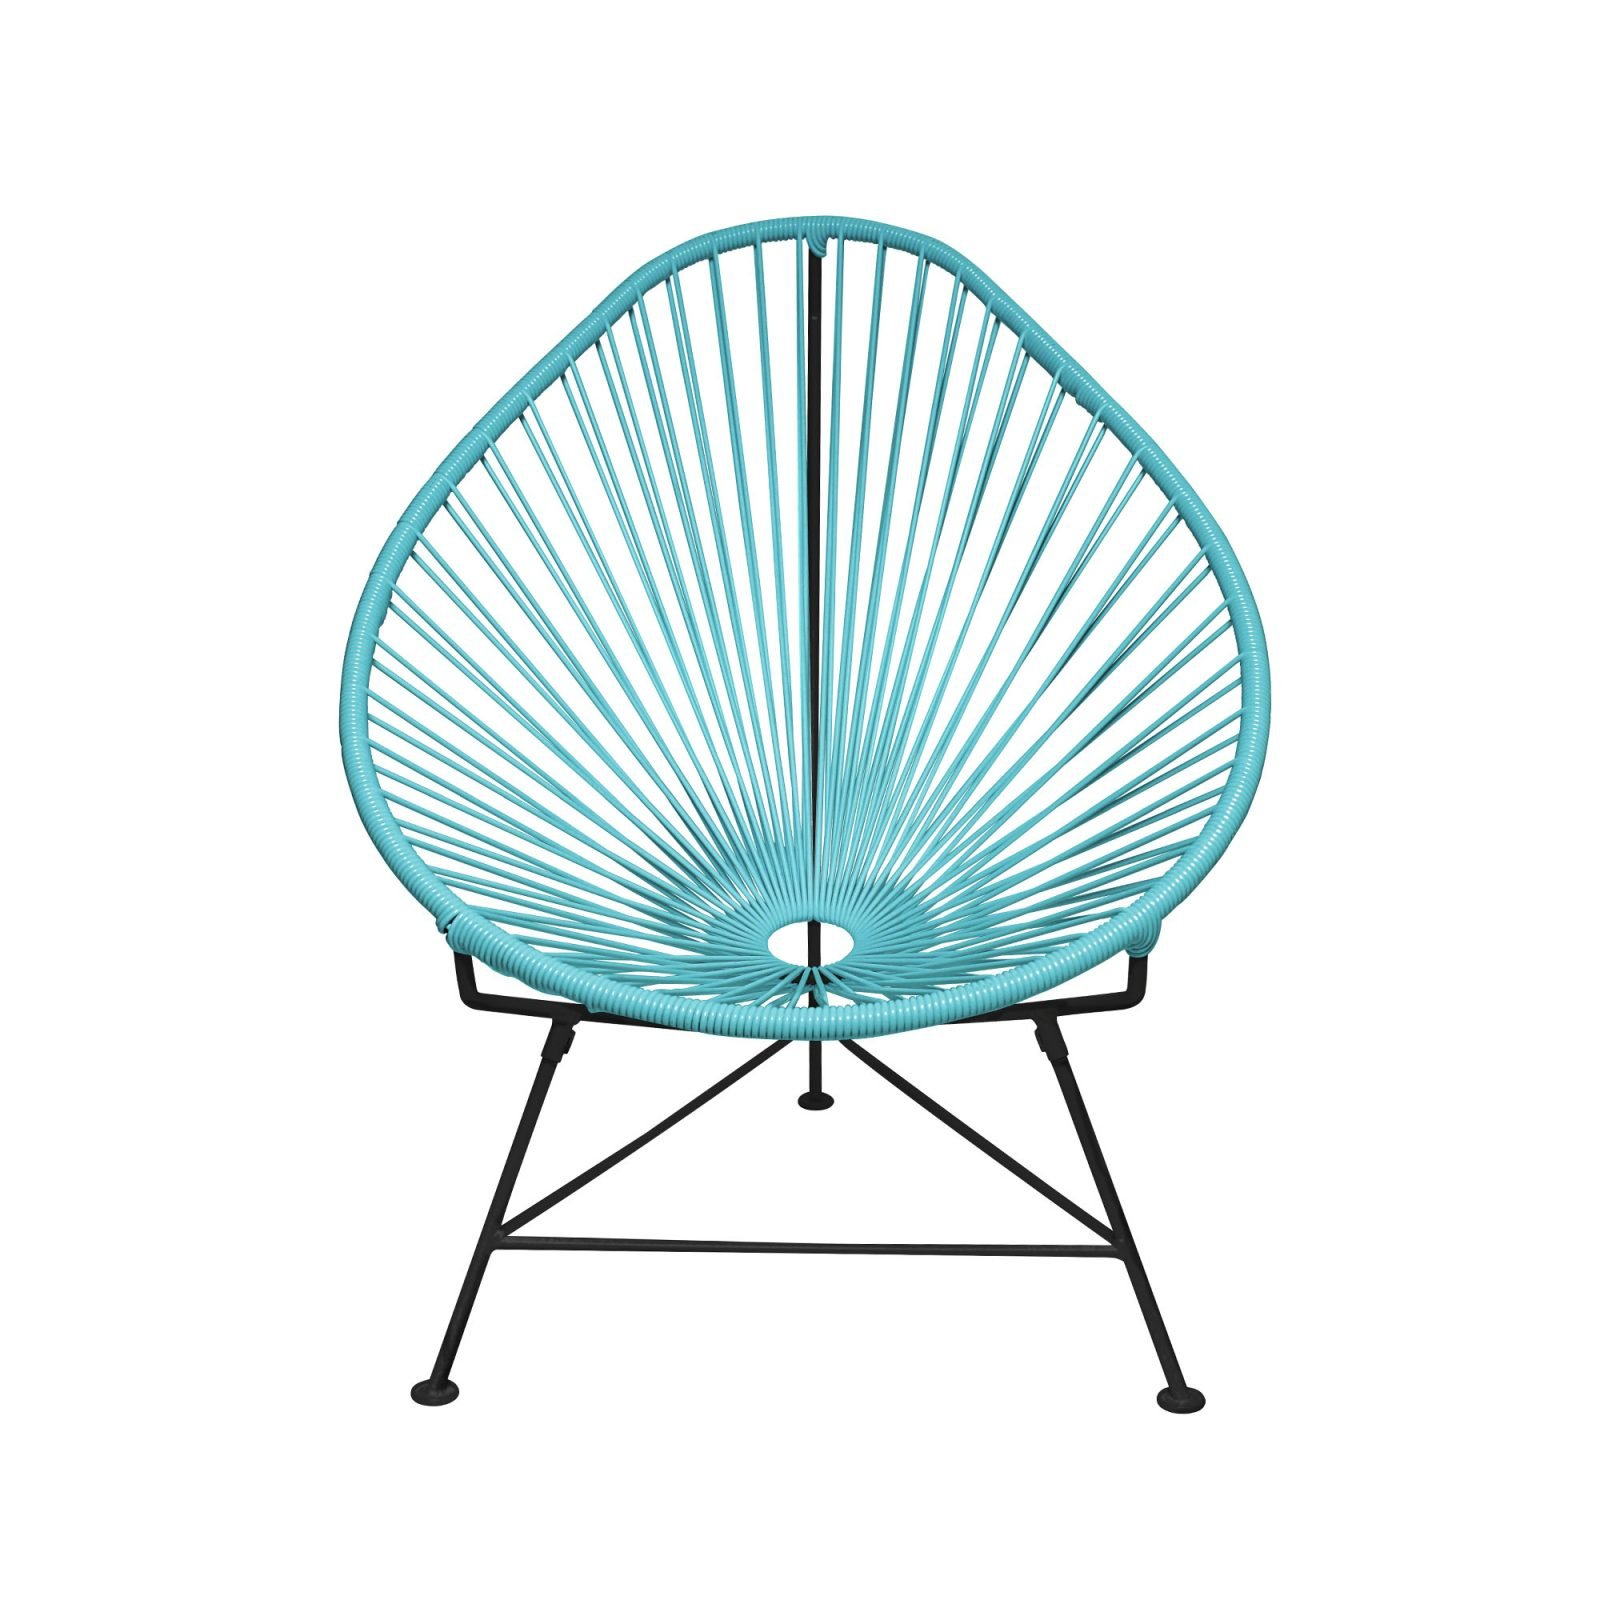 acapulco-chair-black-frame-tourquoise